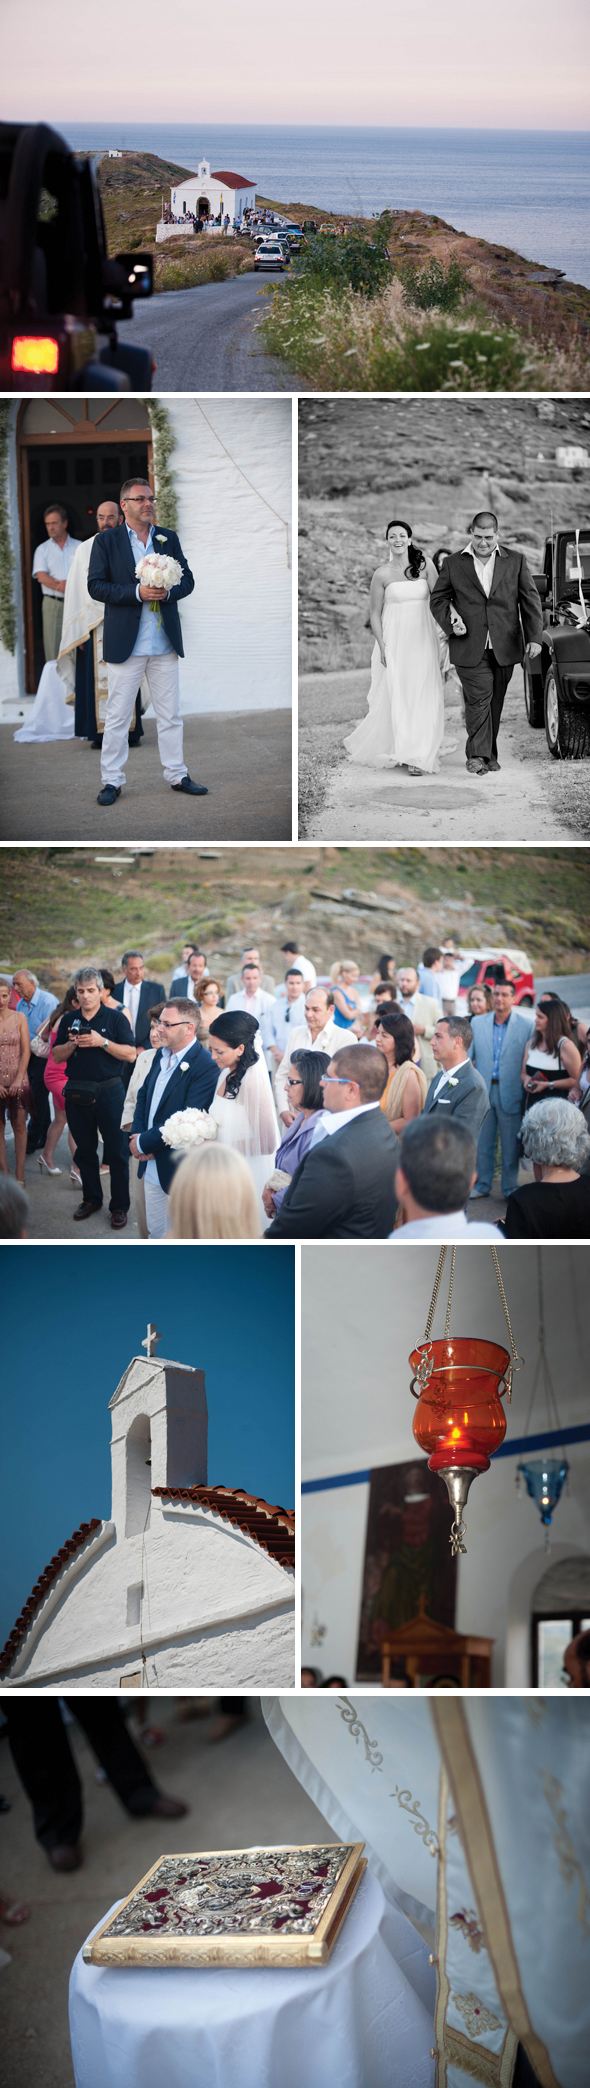 destination-wedding-ceremony-greek-isles